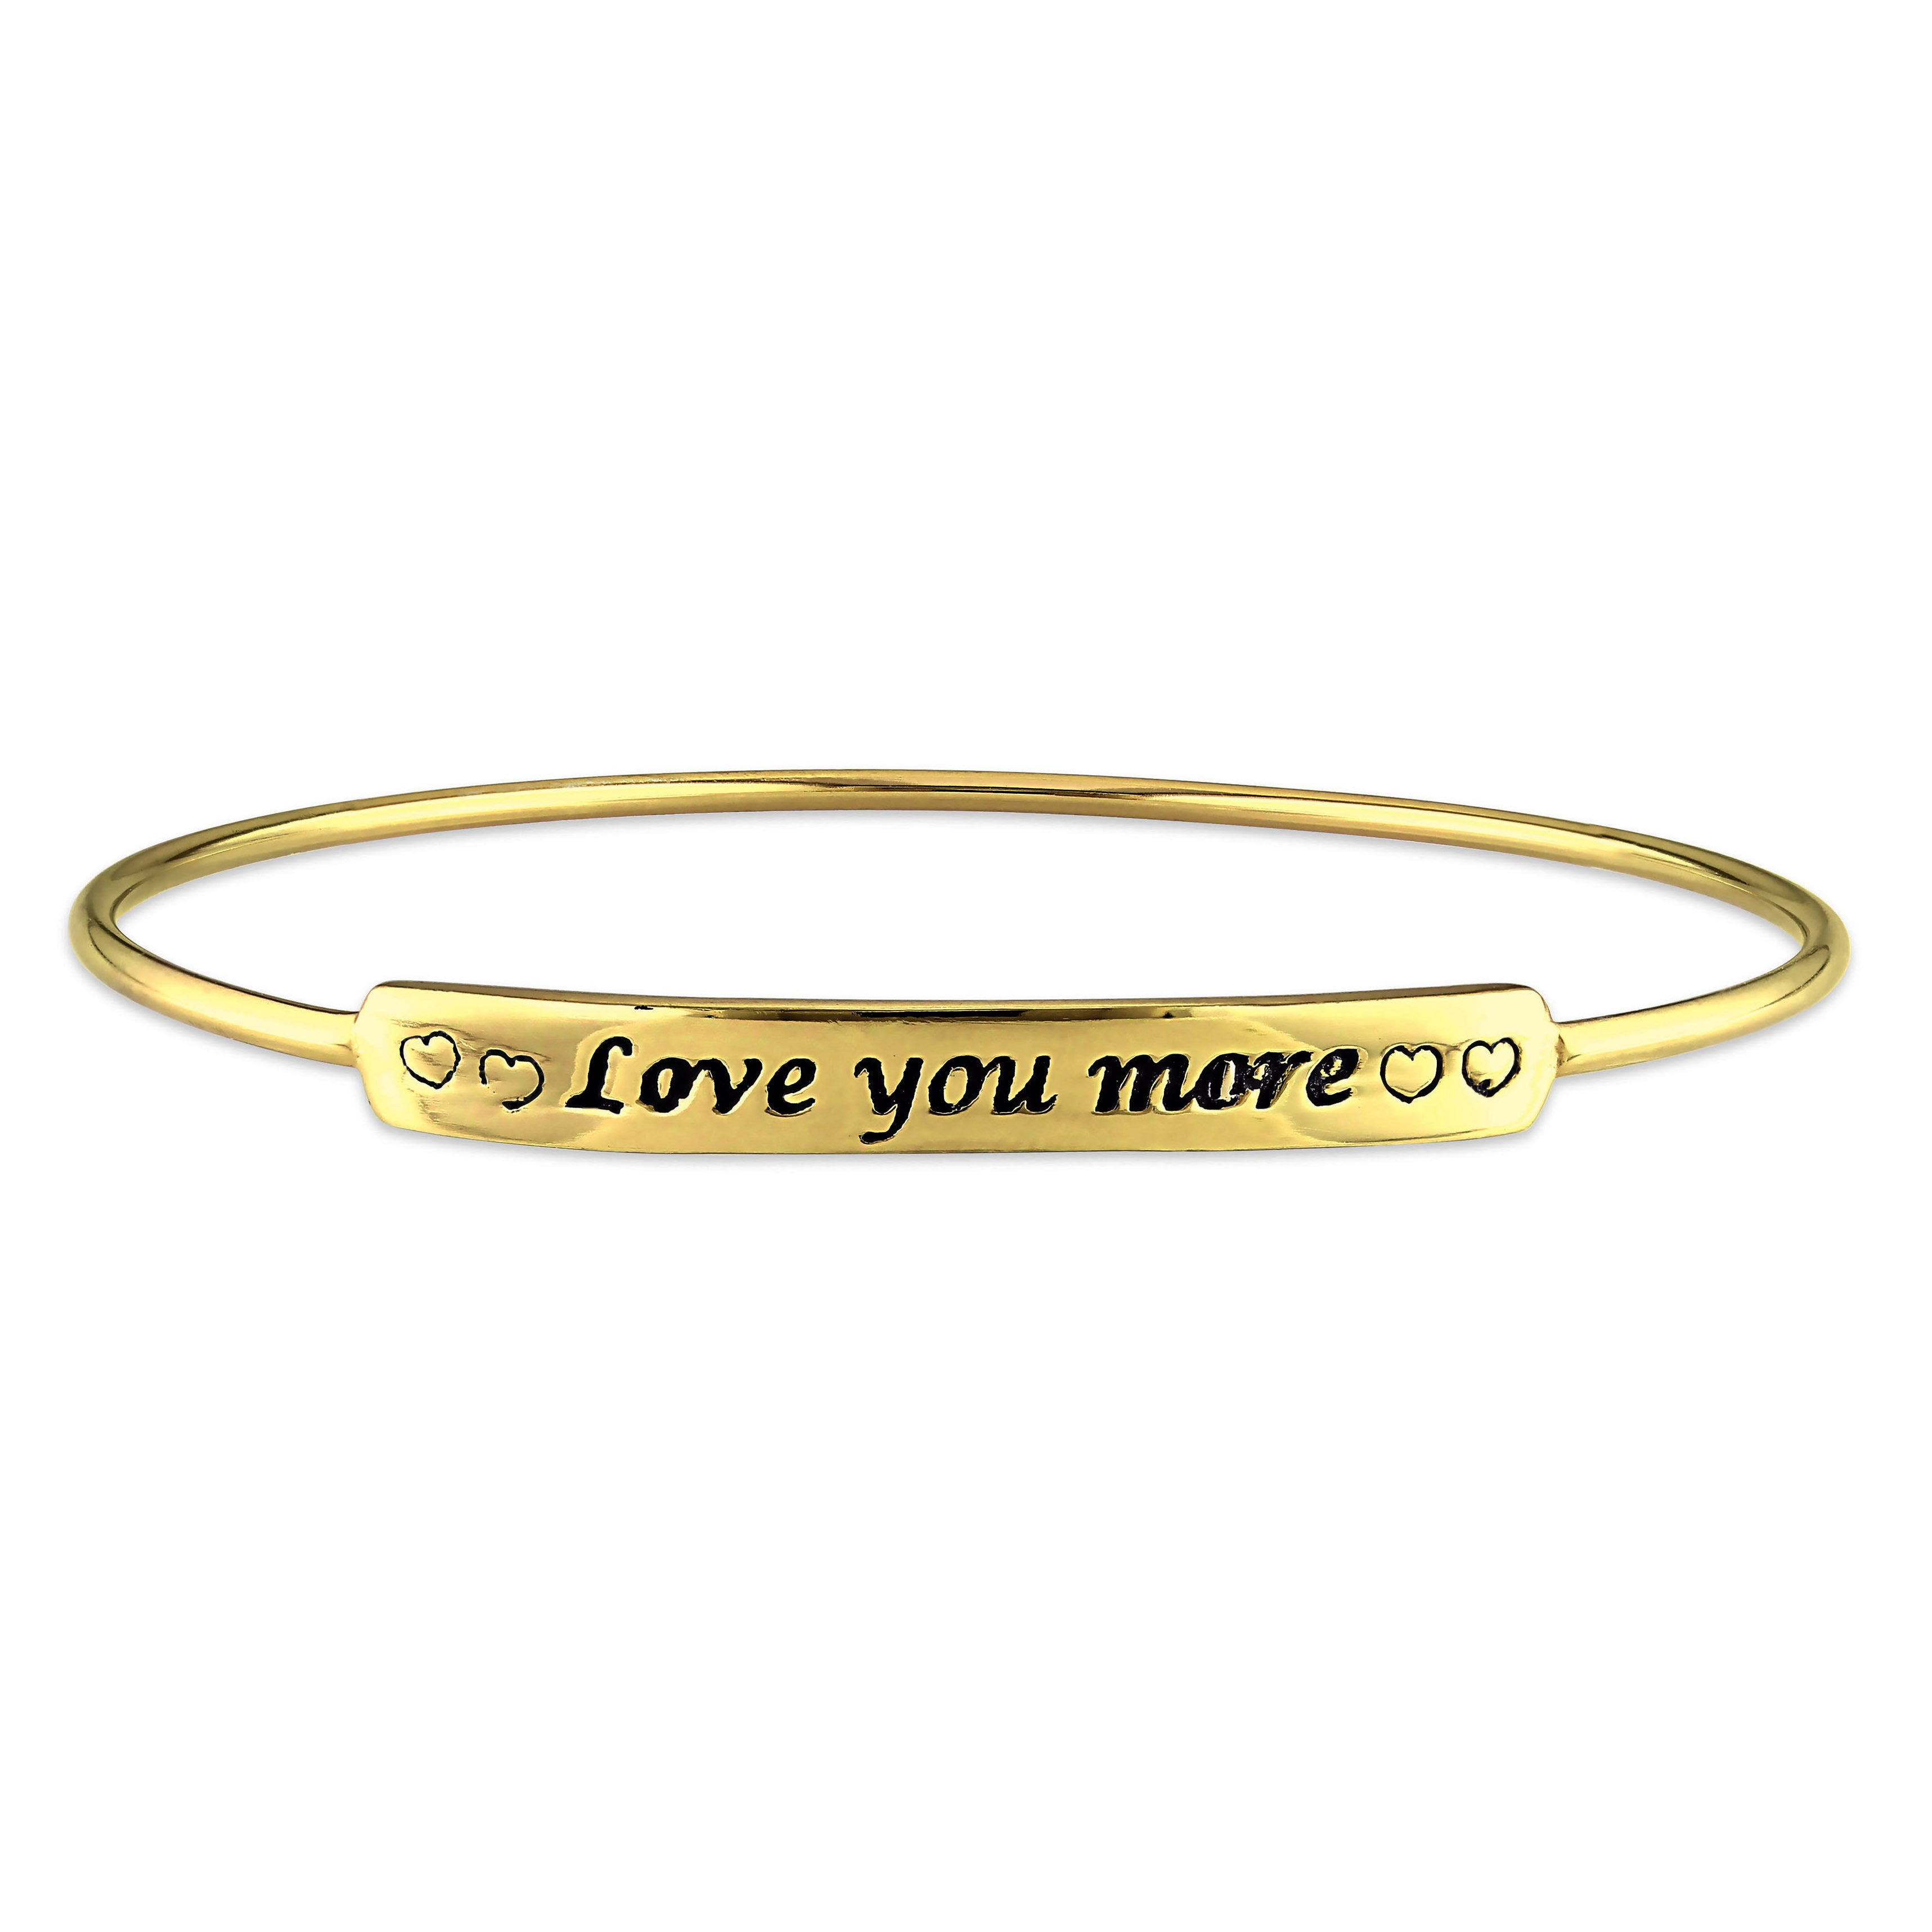 Miadora Yellow Plated Sterling Silver Love You More Id Bangle Bracelet Free Shipping On Orders Over 45 10701506